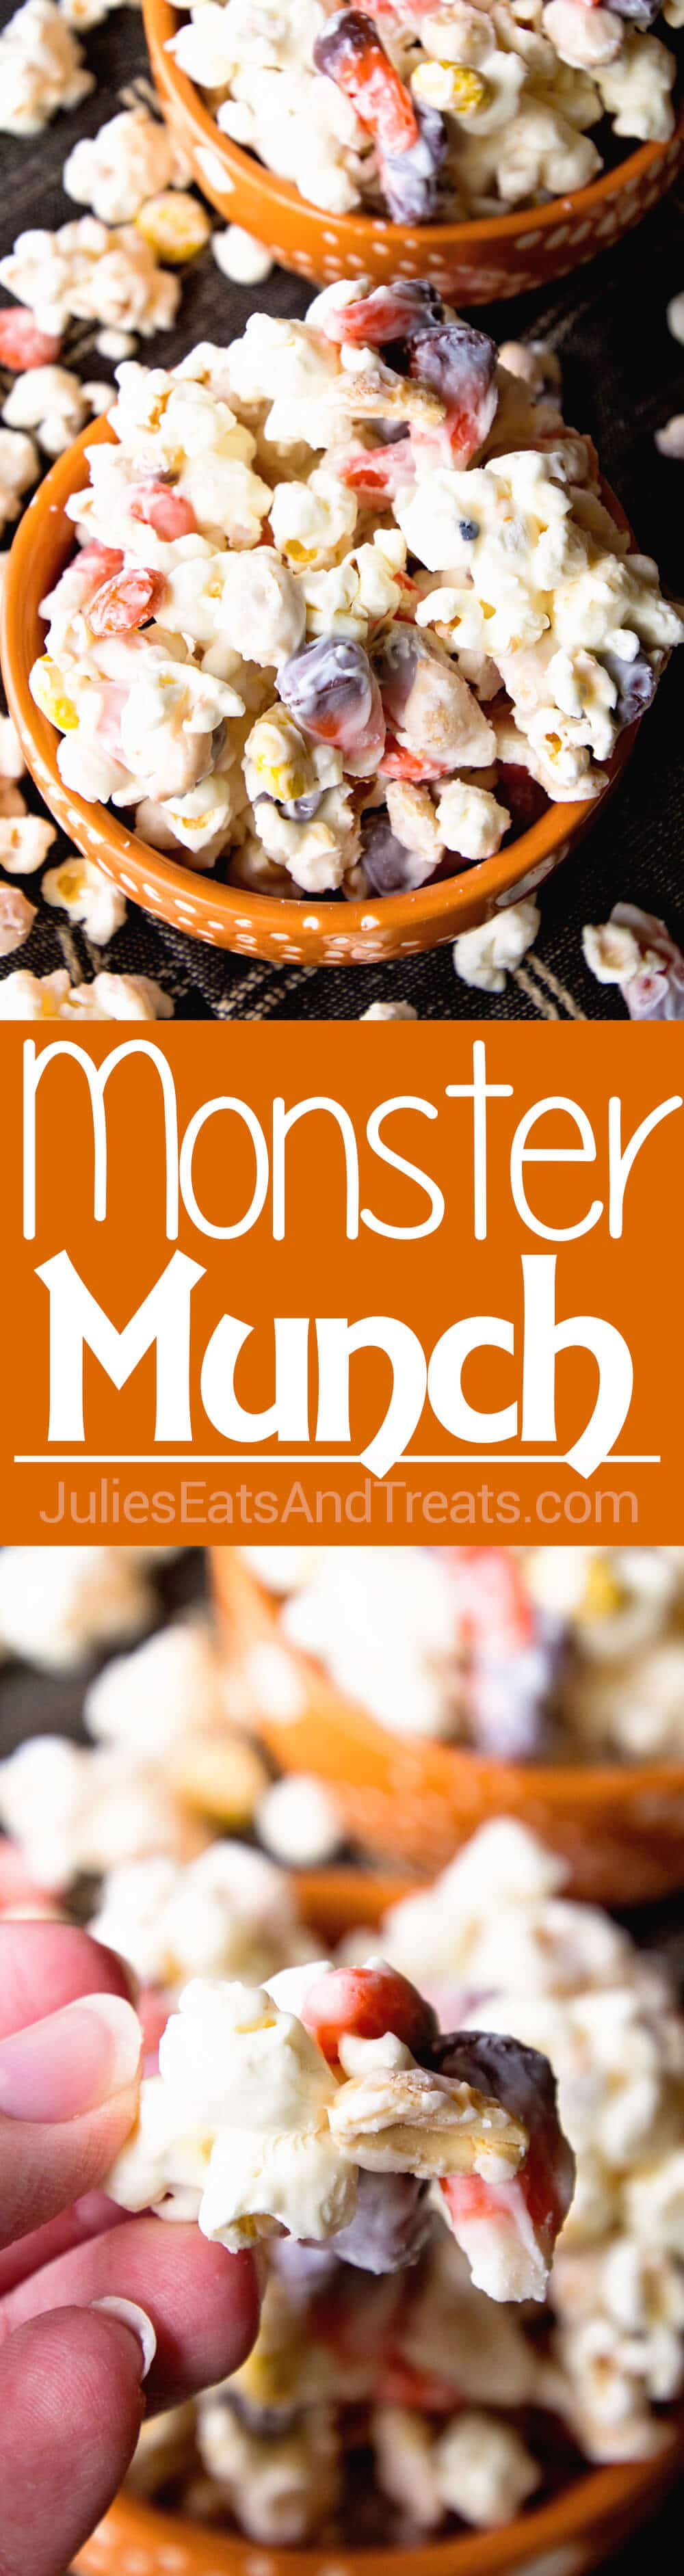 Monster Munch Halloween Snack Mix ~ Sweet & Salty Snack Mix Loaded with Popcorn, Candy Corn, Peanuts & Reese's Pieces!